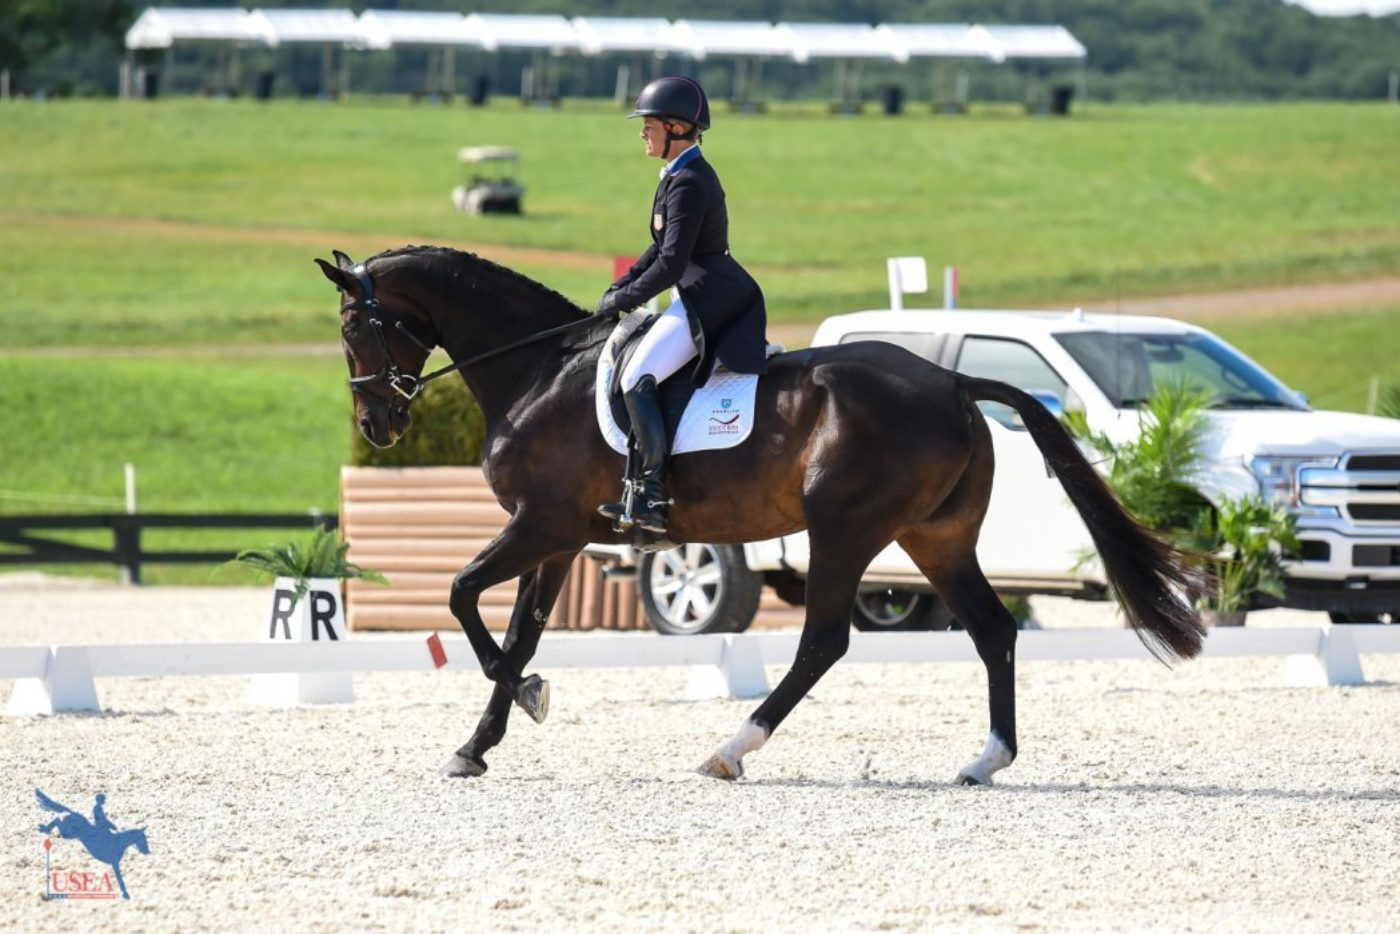 15thT - Lynn Symansky and Under Suspection - 34.5